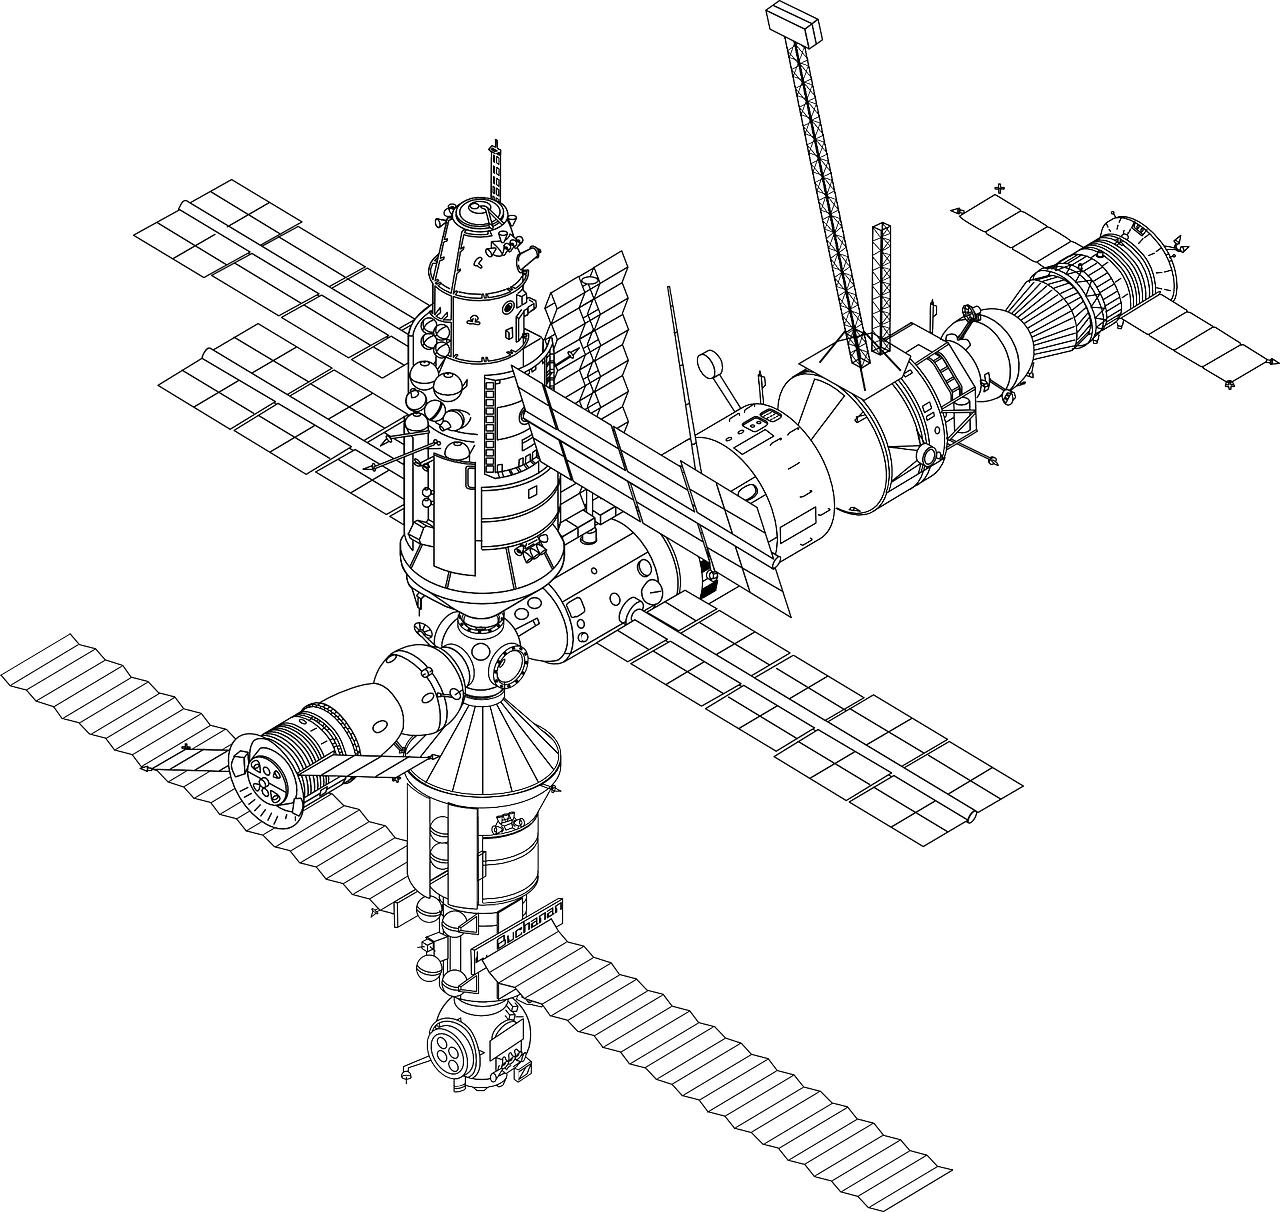 Spacecraft drawing. International space station mir